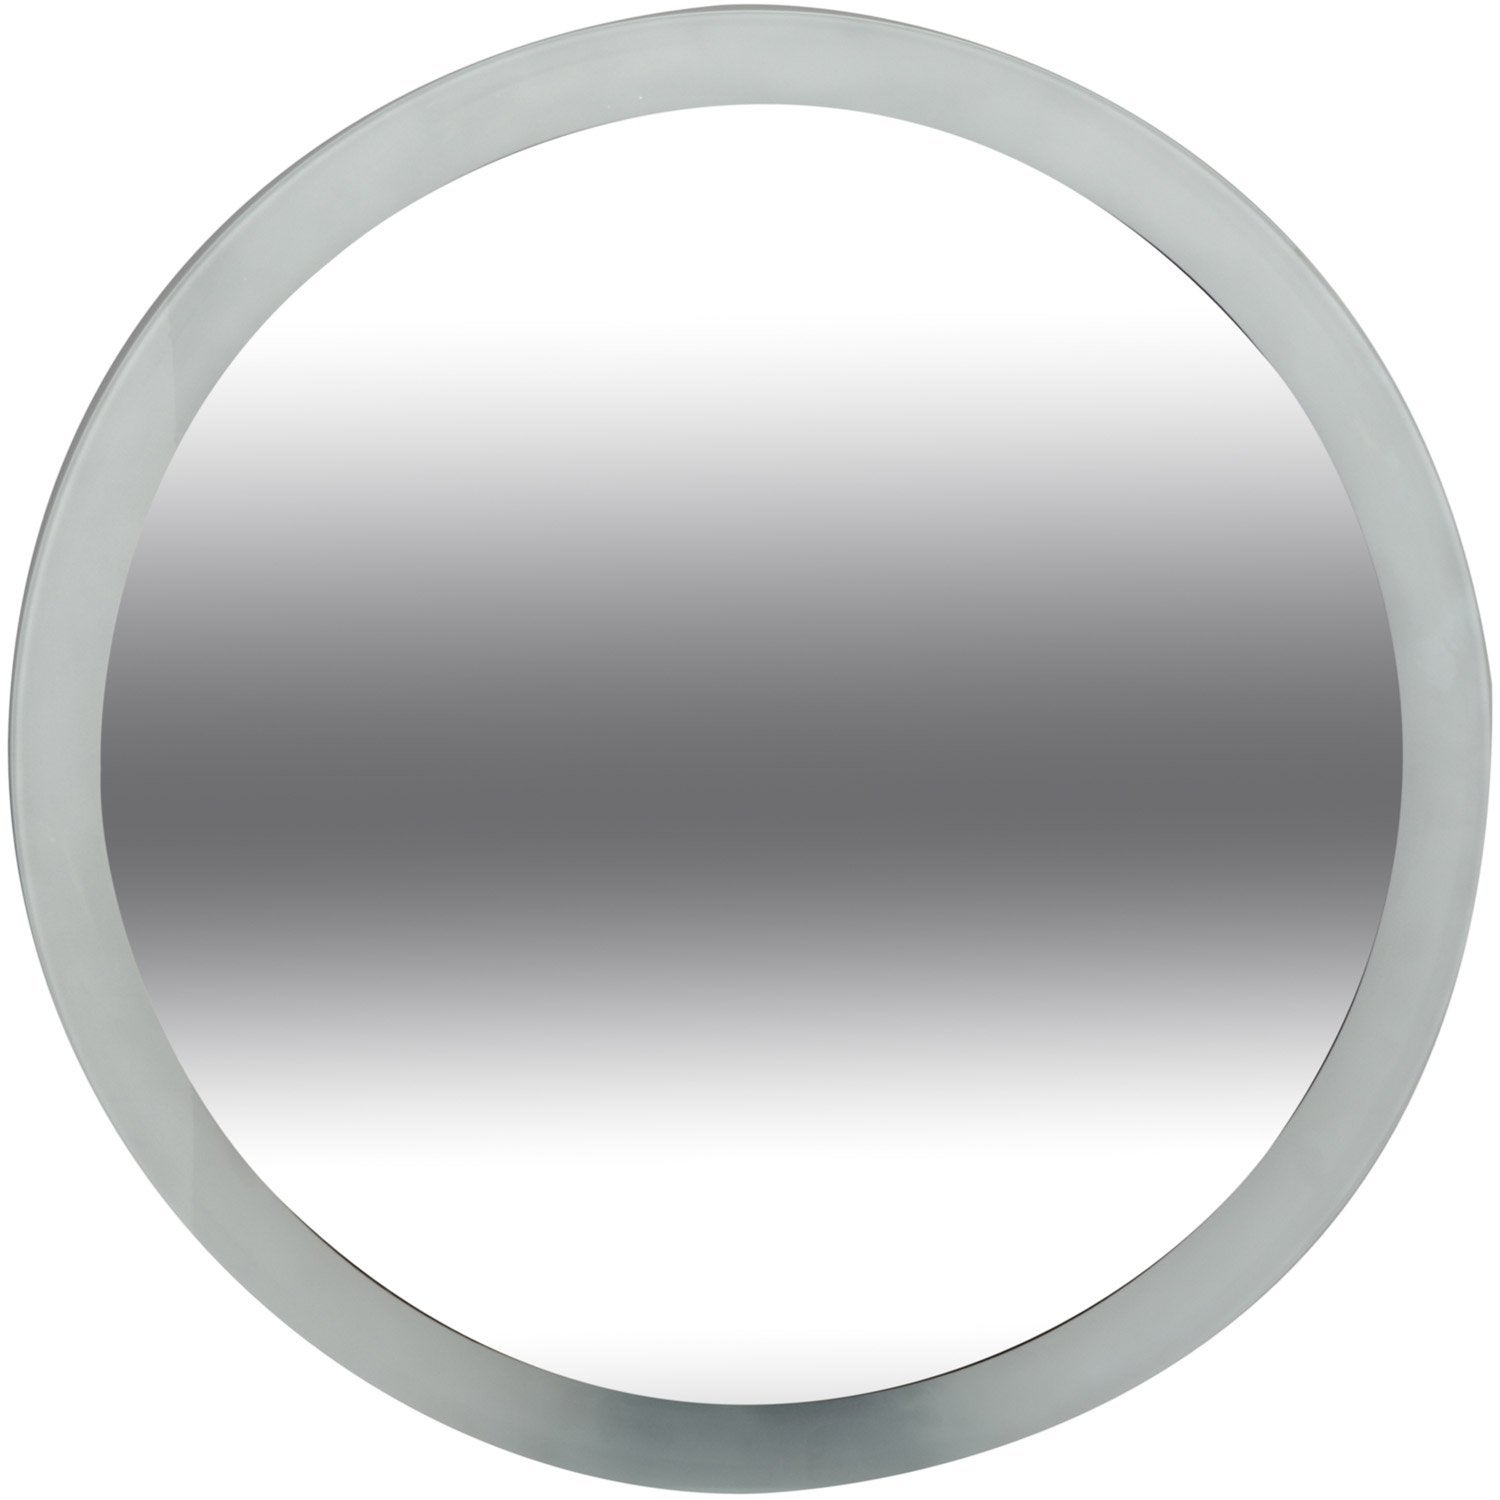 Miroir rond leroy merlin for Leroy merlin decoupe miroir